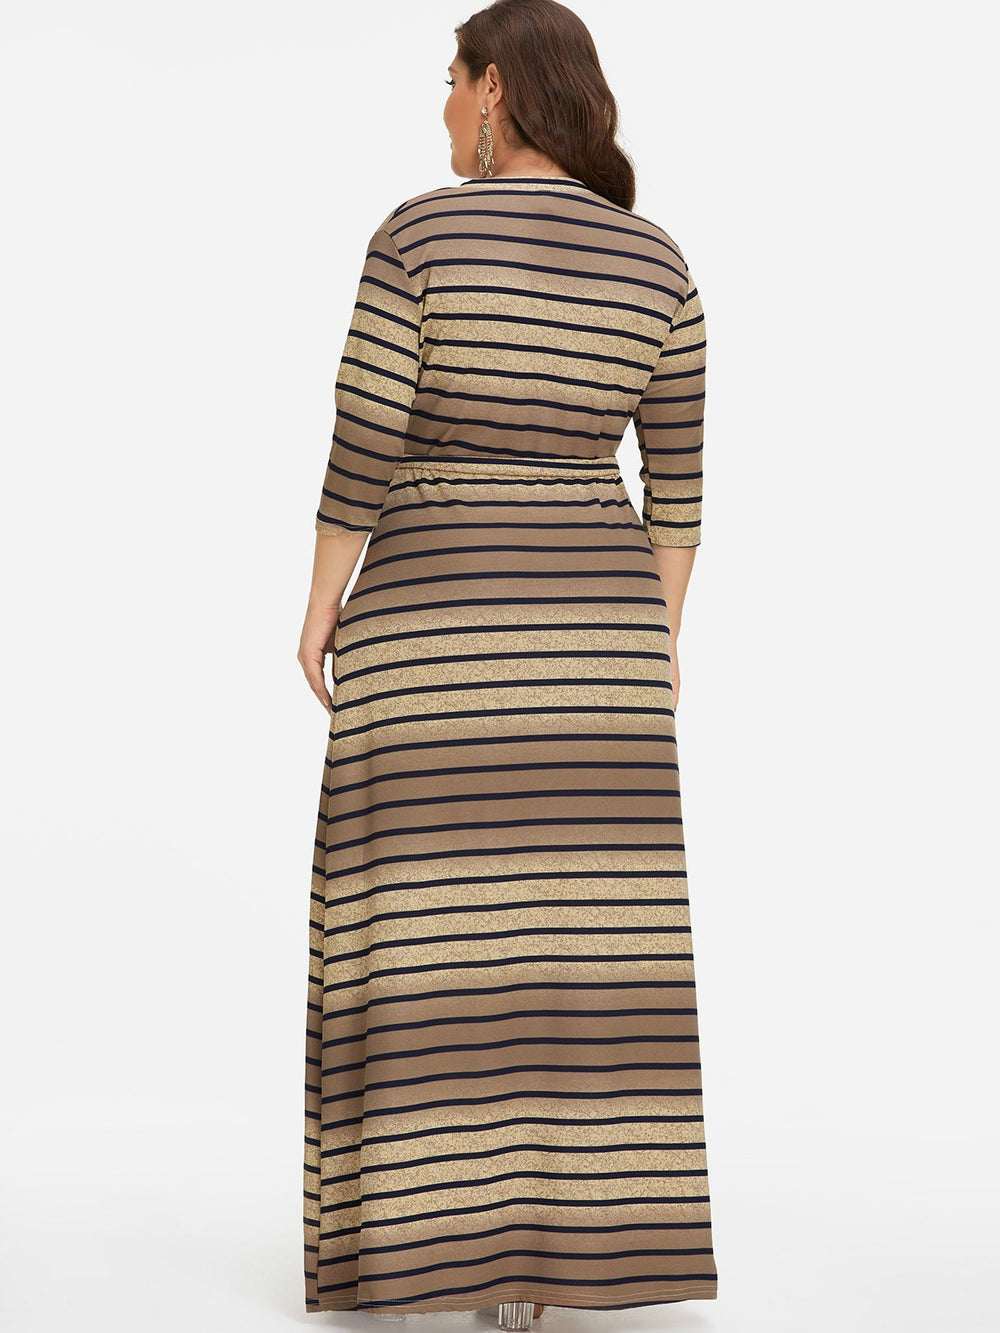 Womens Khaki Plus Size Dresses